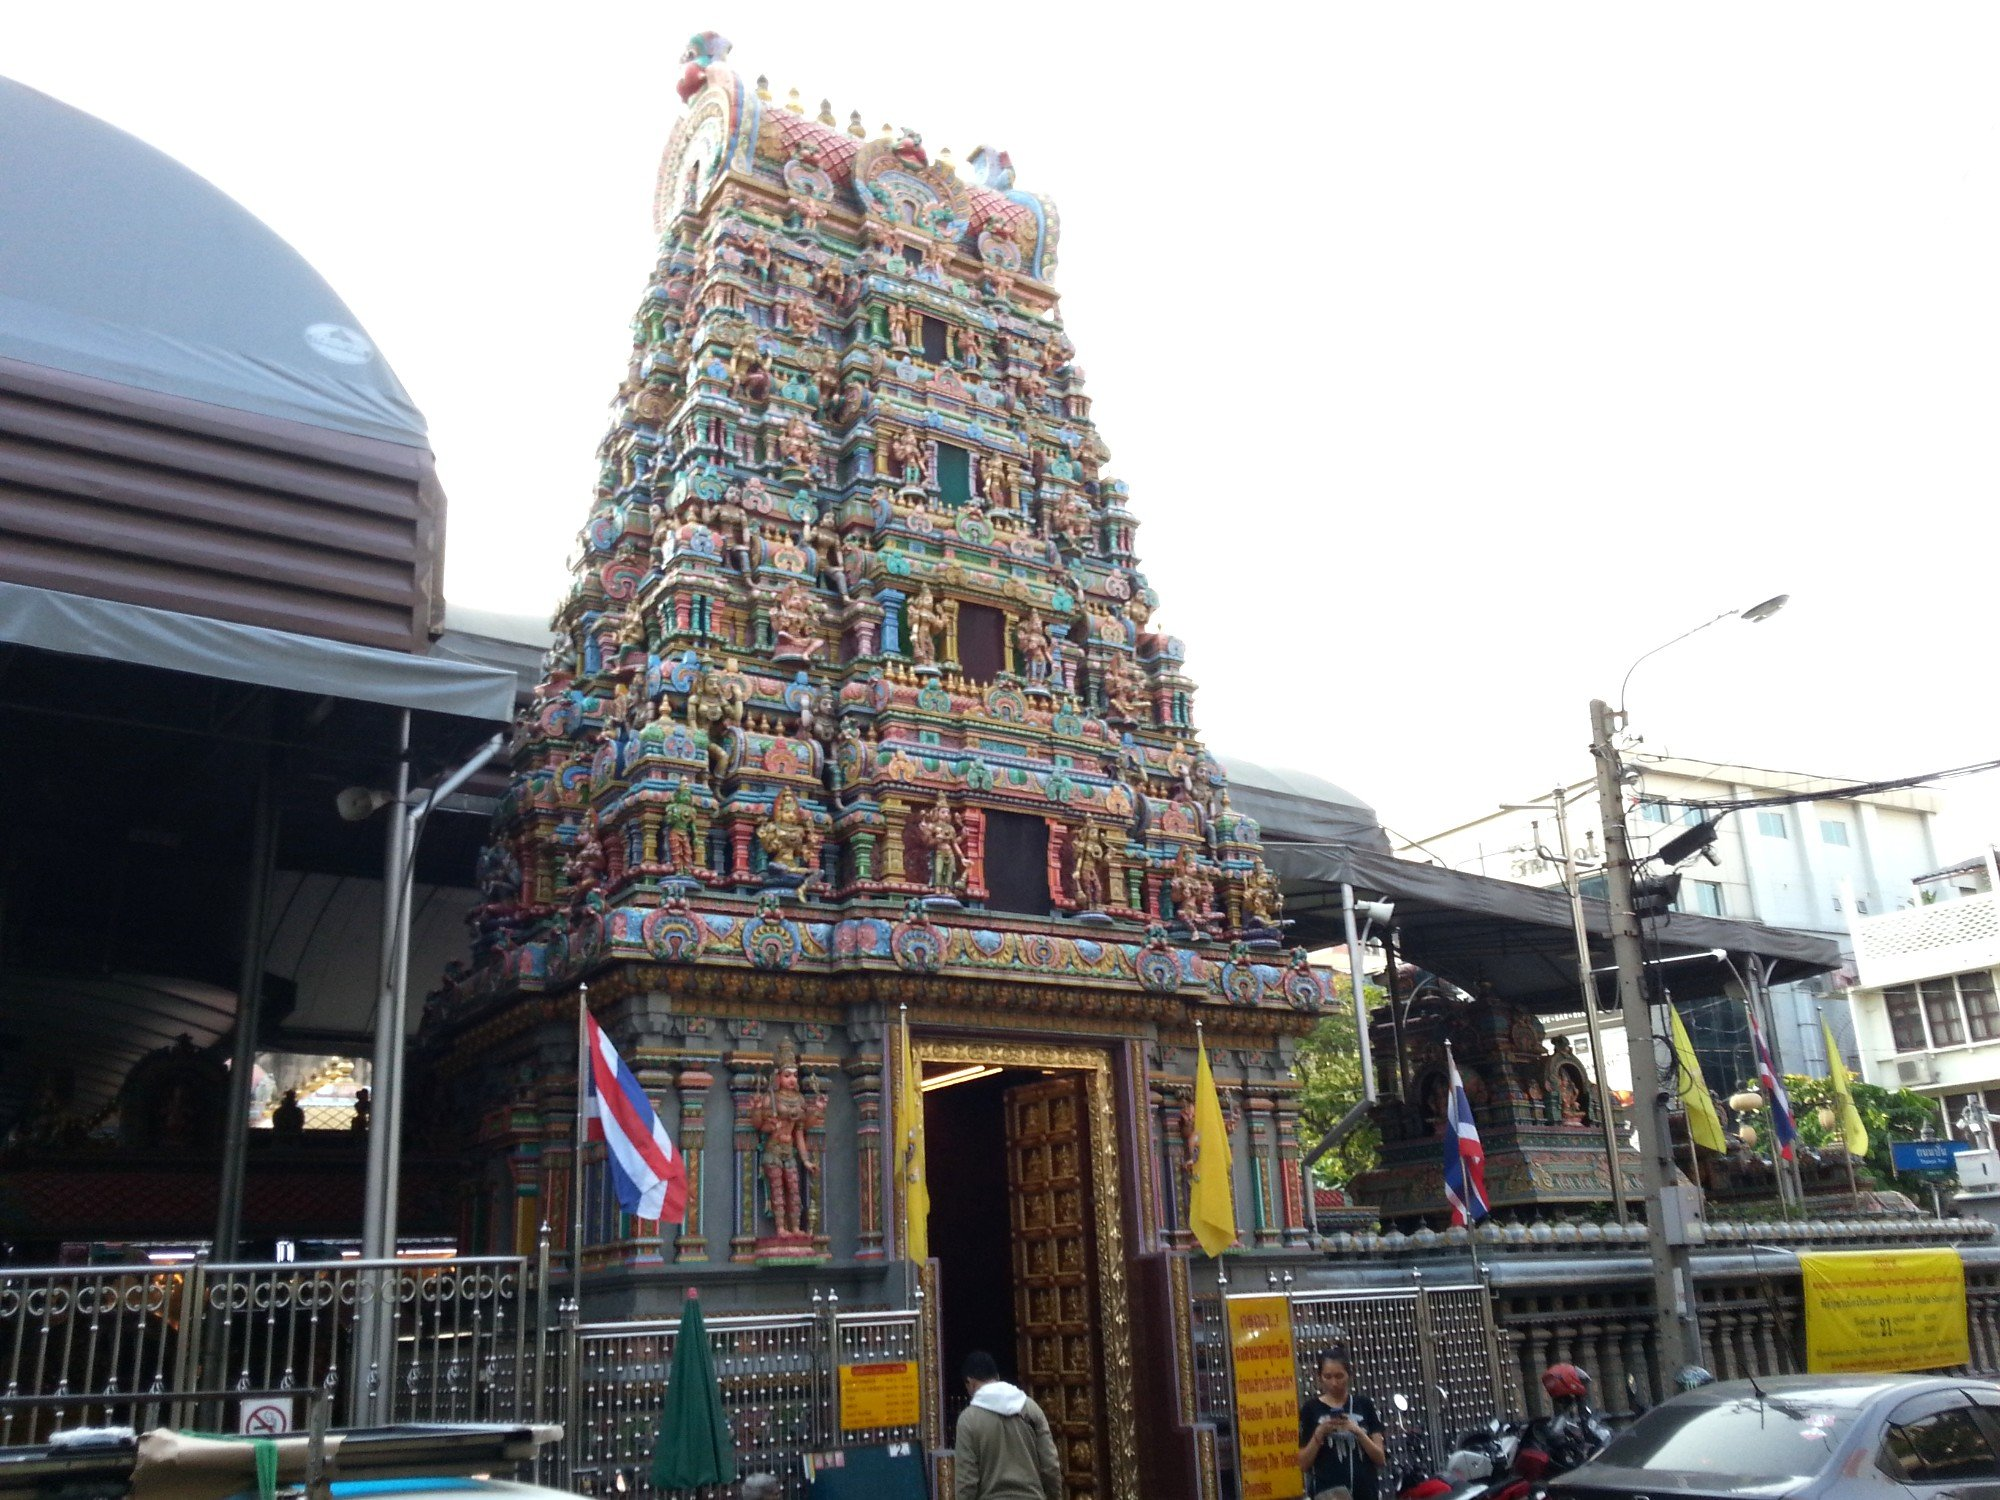 Sri Maha Mariamman Temple in Bangkok